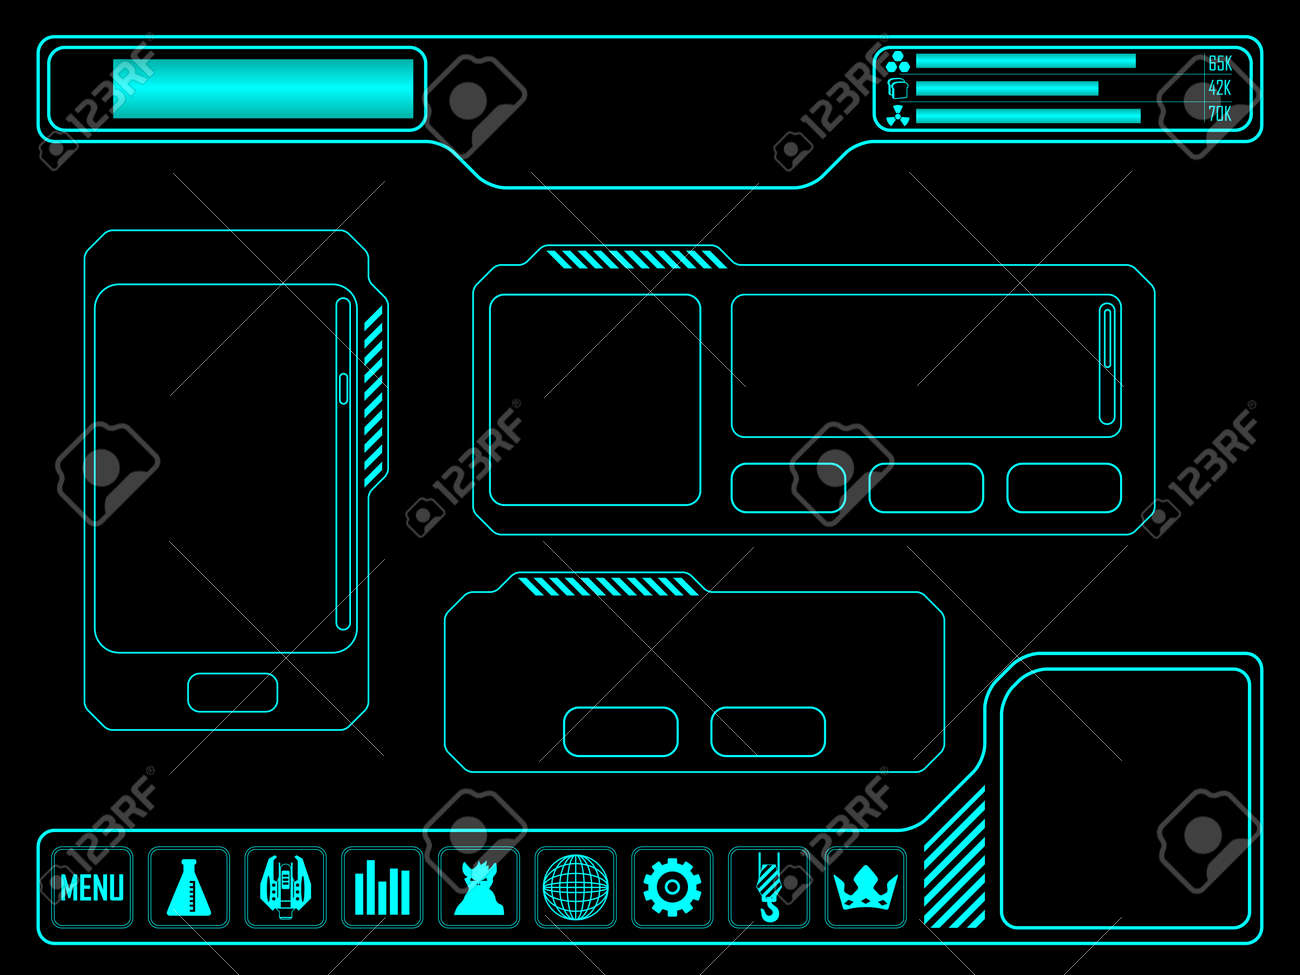 Vector elements for space video game - 44379060